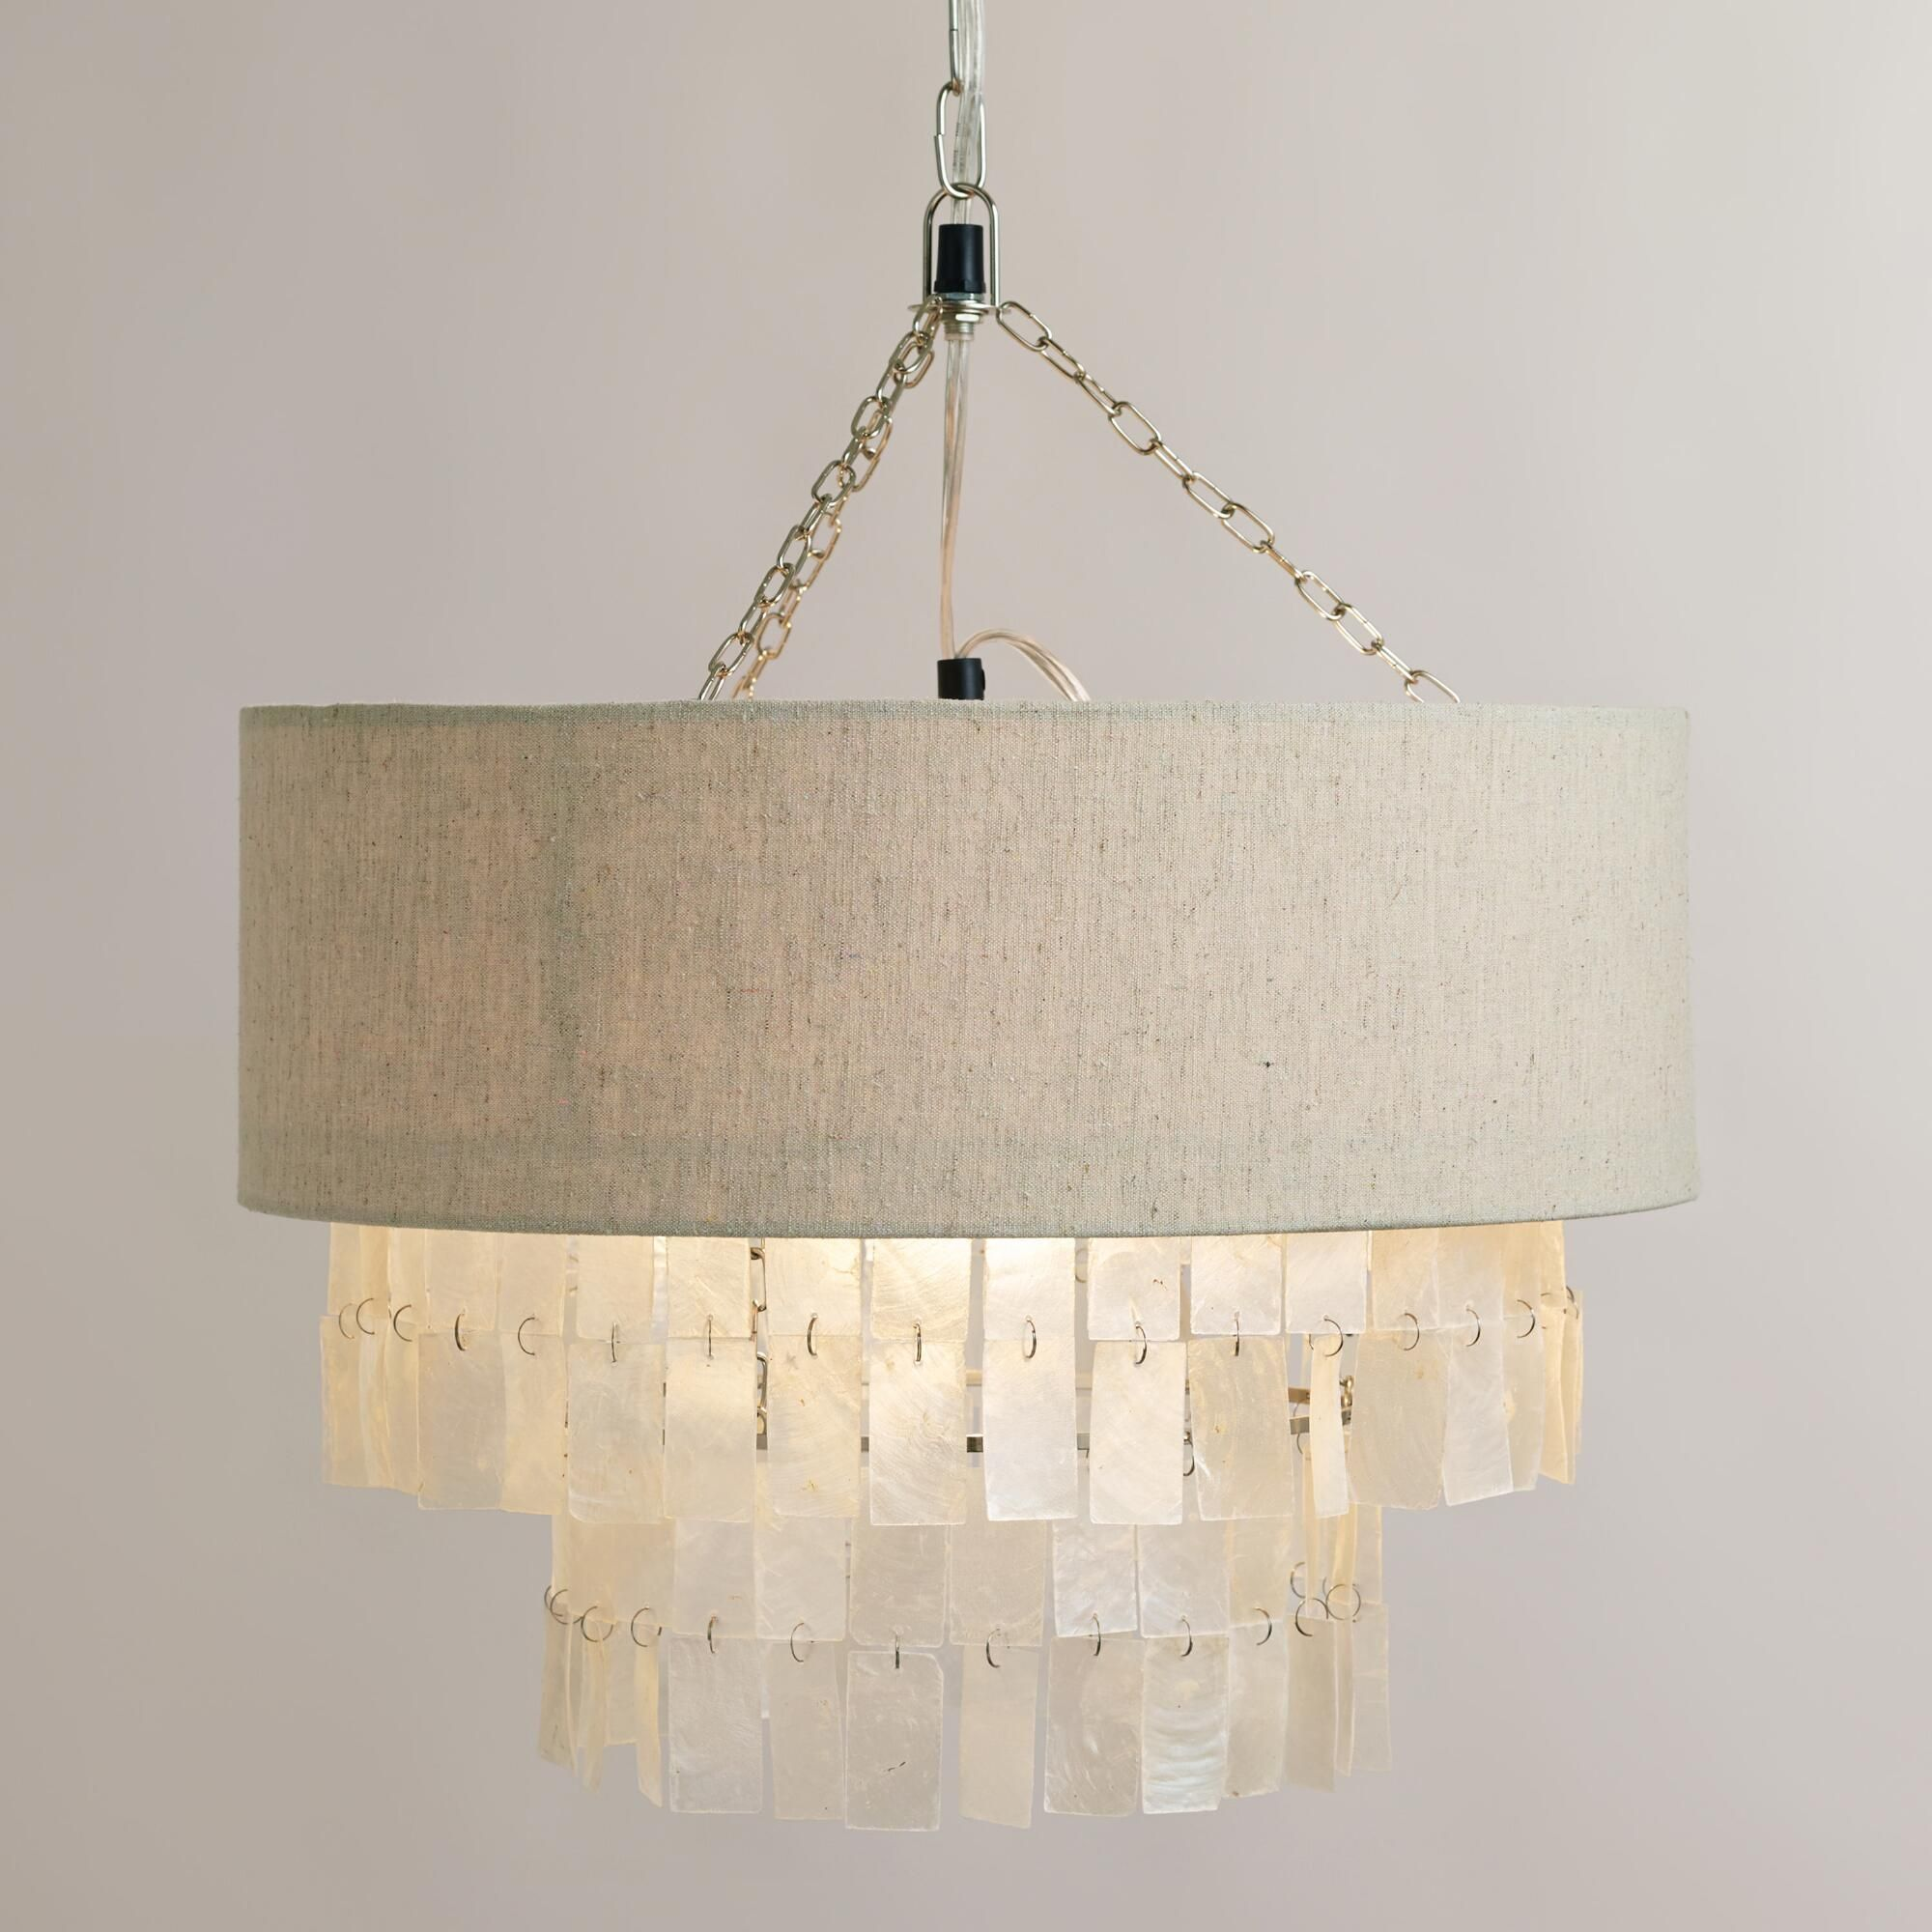 Over Table Light Fixture Gorgeous Fixture For Over A Dining Table There Is Also A